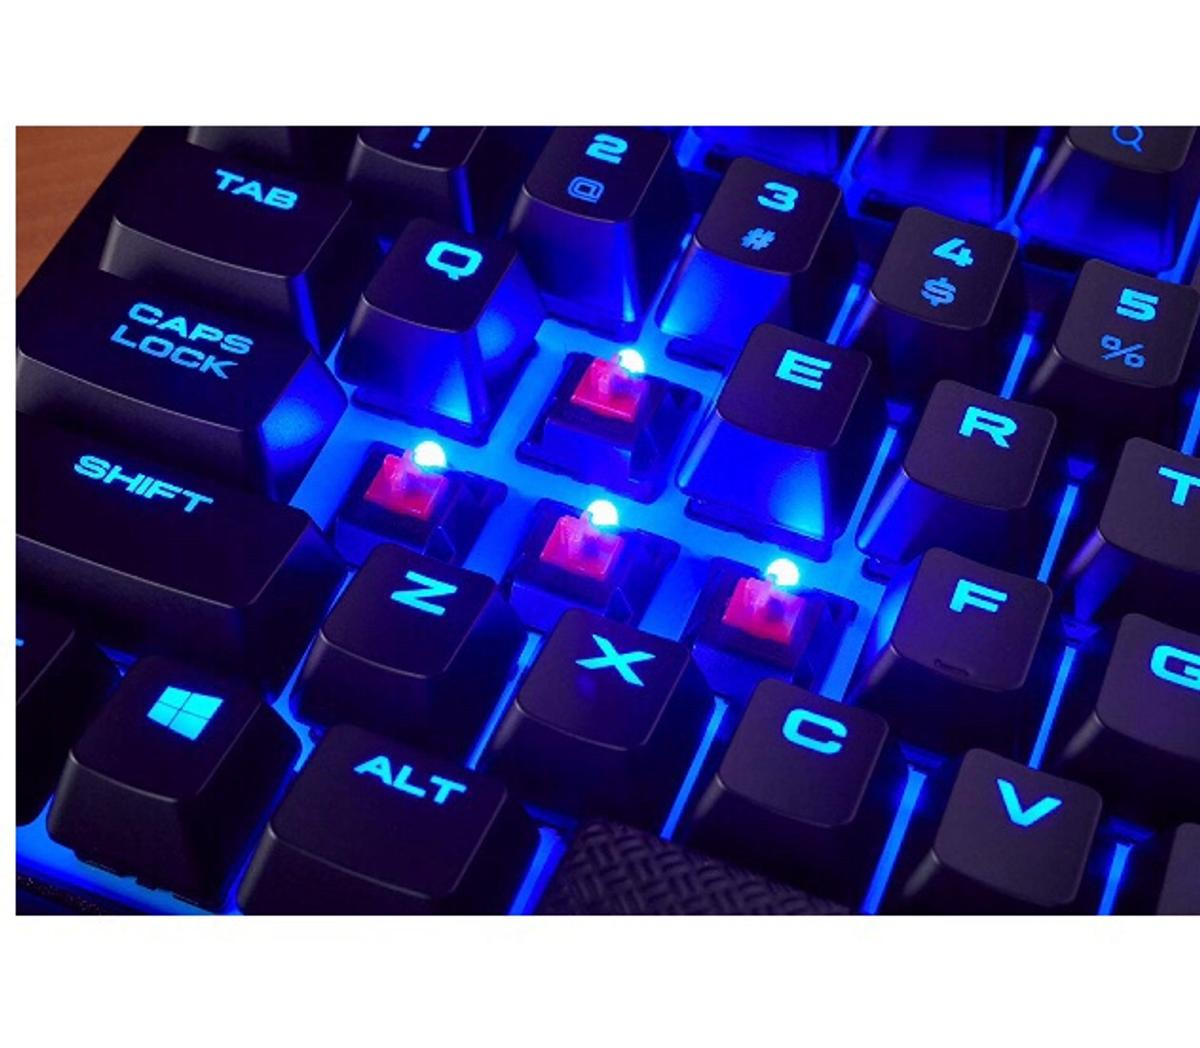 Corsair k63 wireless gaming keyboard in Luton for £105 00 for sale